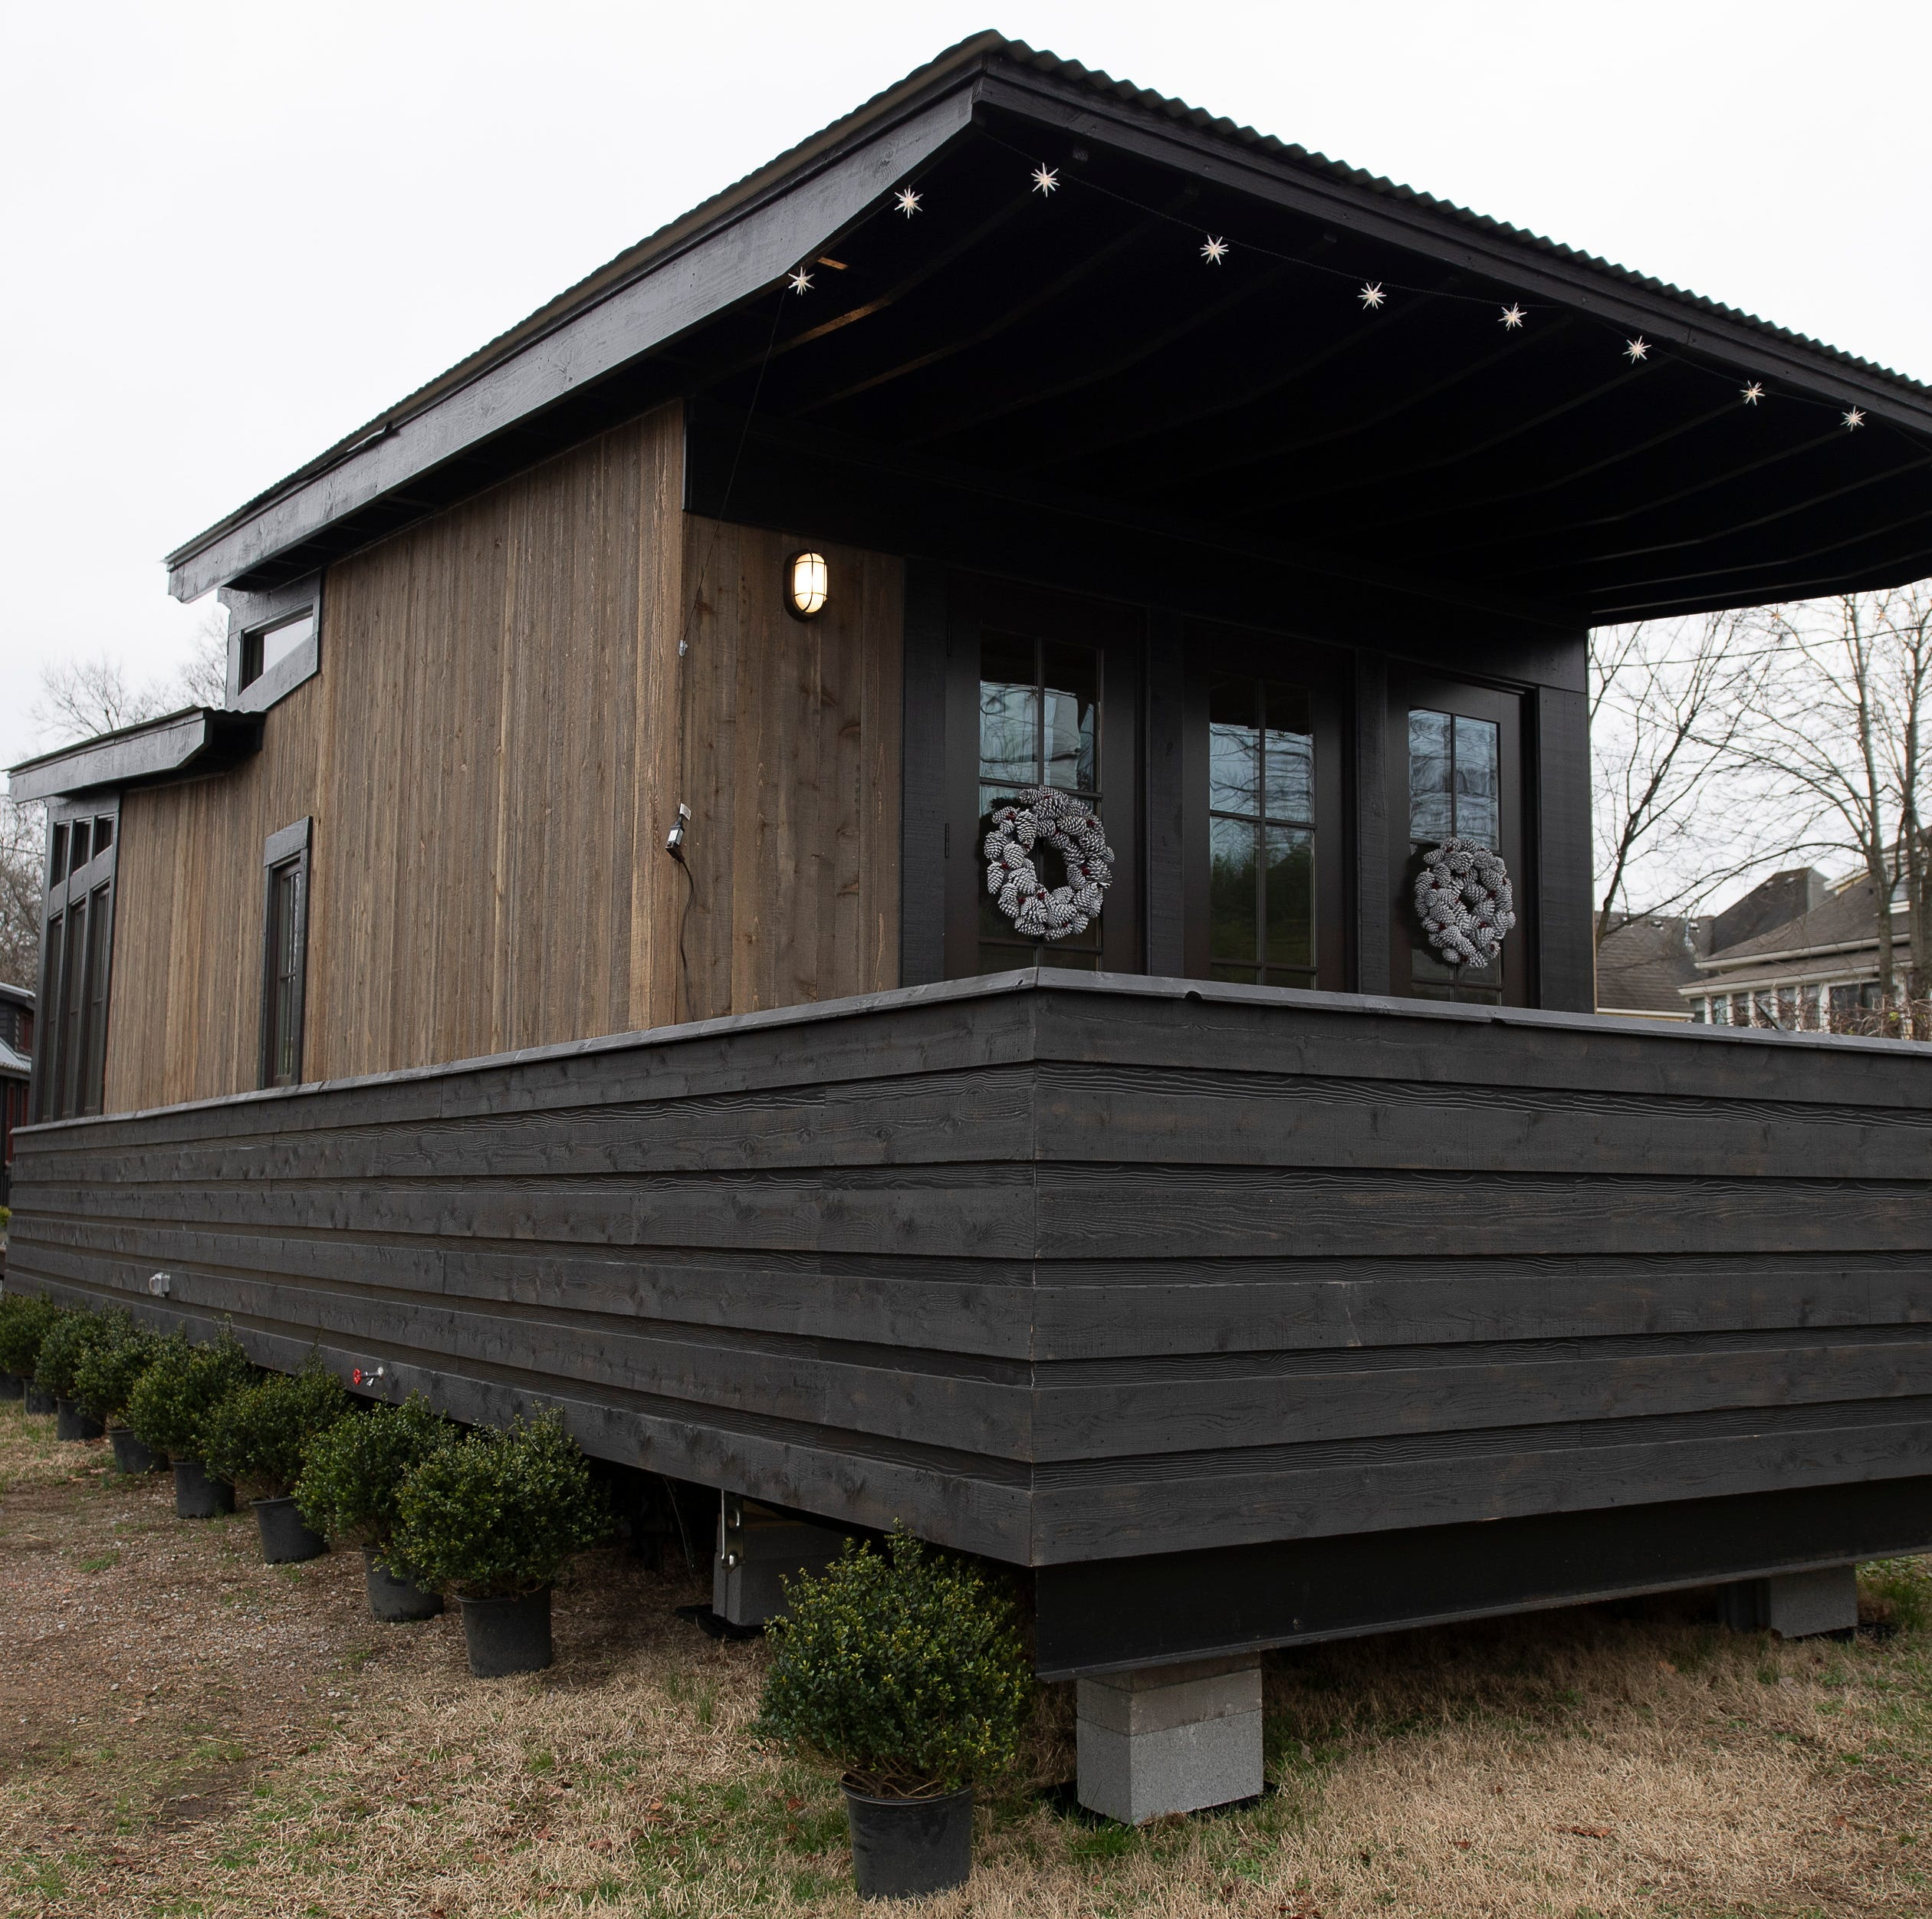 Micro-homes pitched as a solution to Nashville's affordable housing crunch